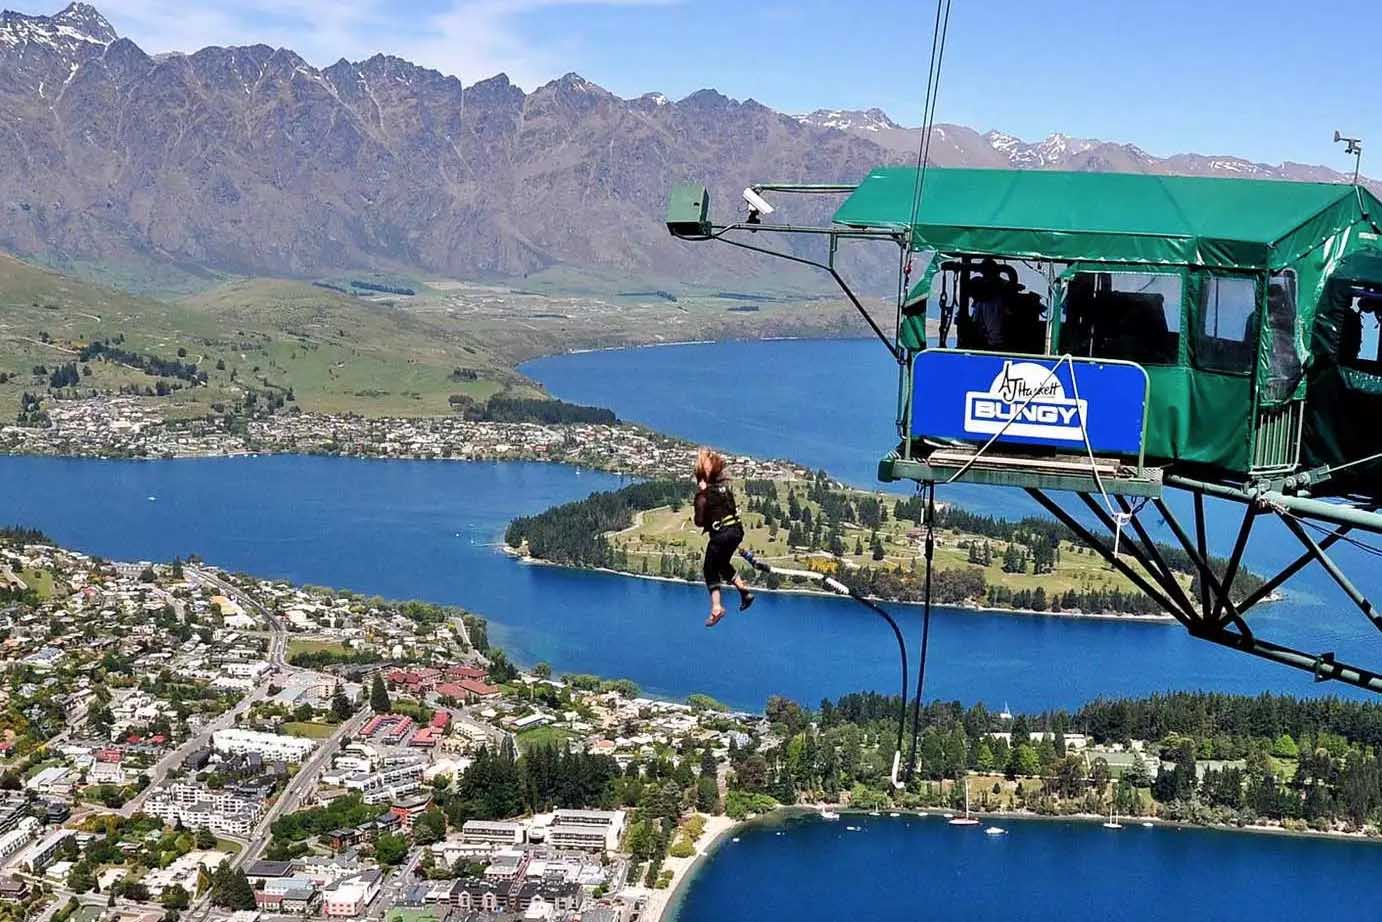 Ledge Bungy Jump queenstown new zealand